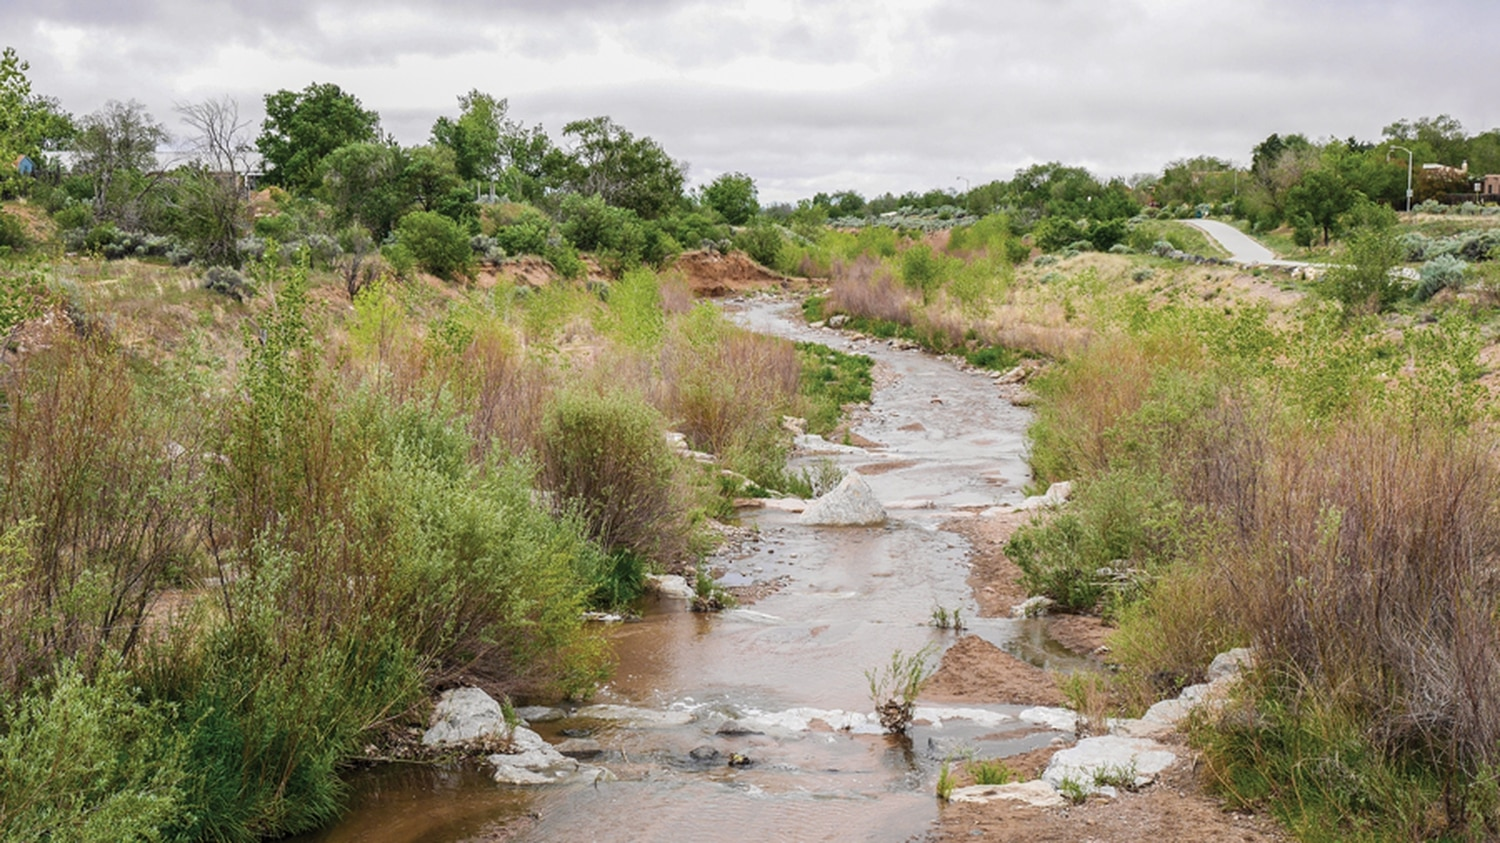 The Santa Fe River is fed by some 80 miles of arroyos webbed through town.